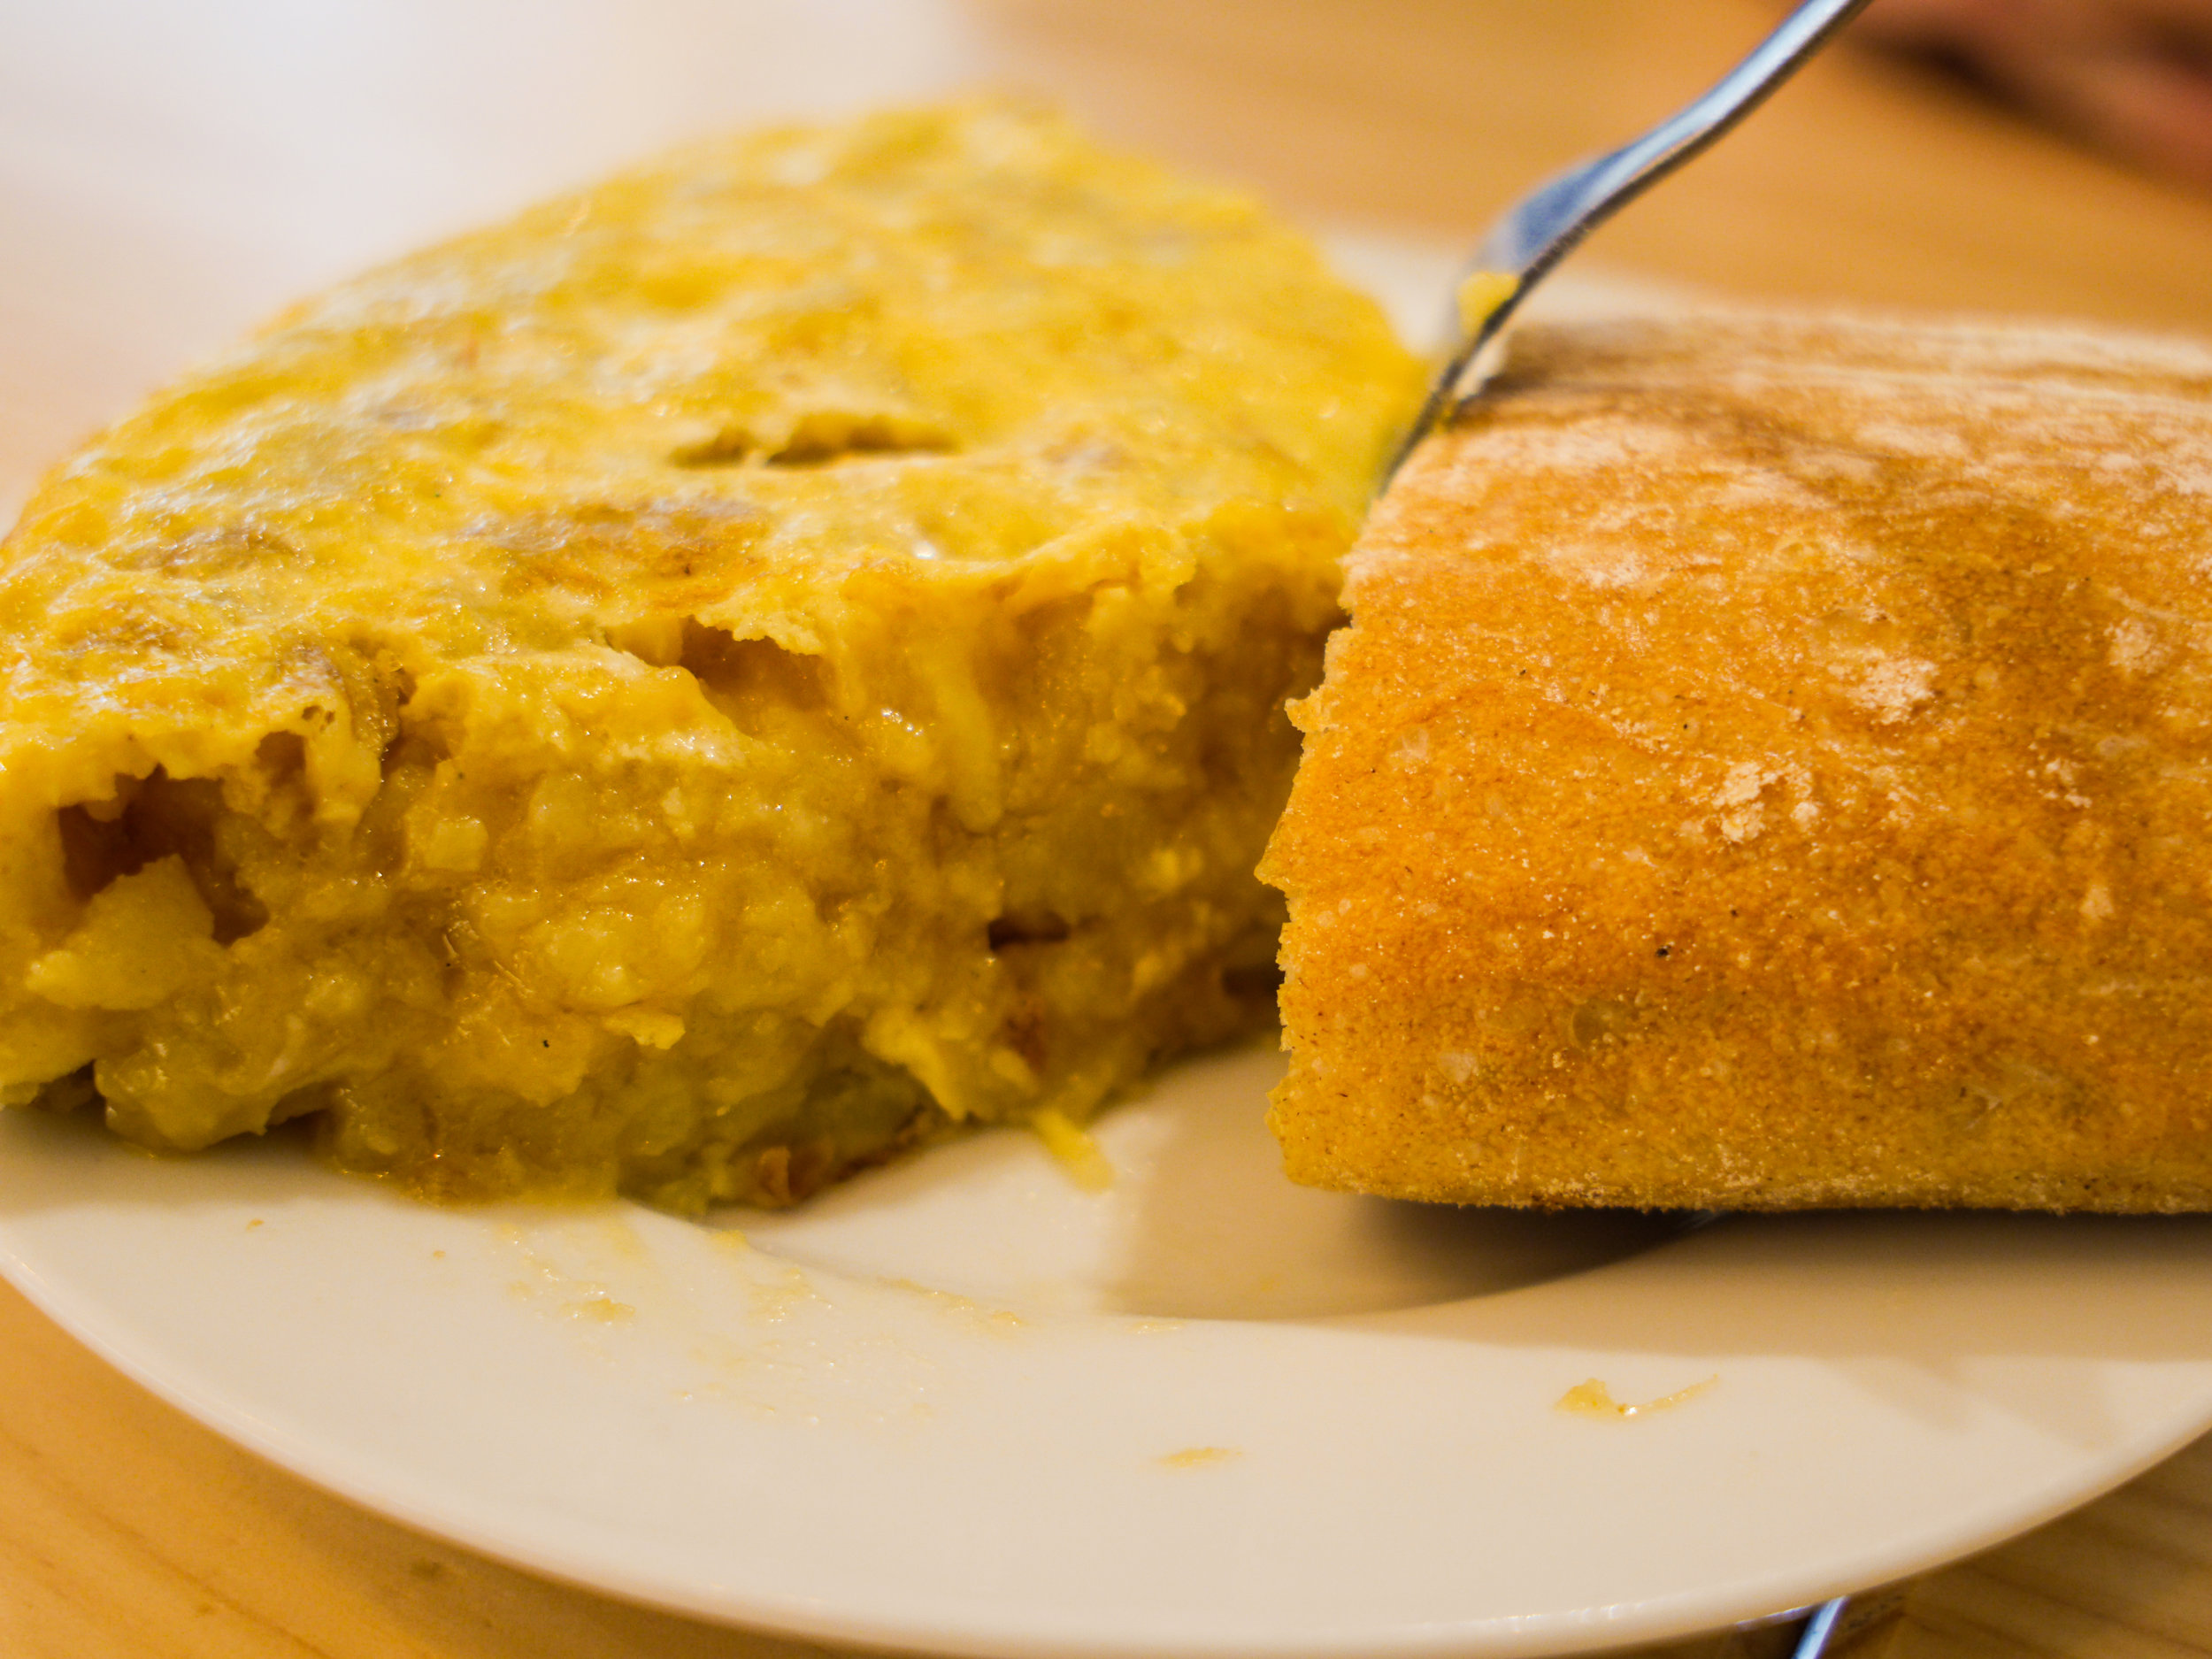 Authentic Spanish tortilla/omelet at Cafeteria Restaurante Casa Dani in Madrid, Spain